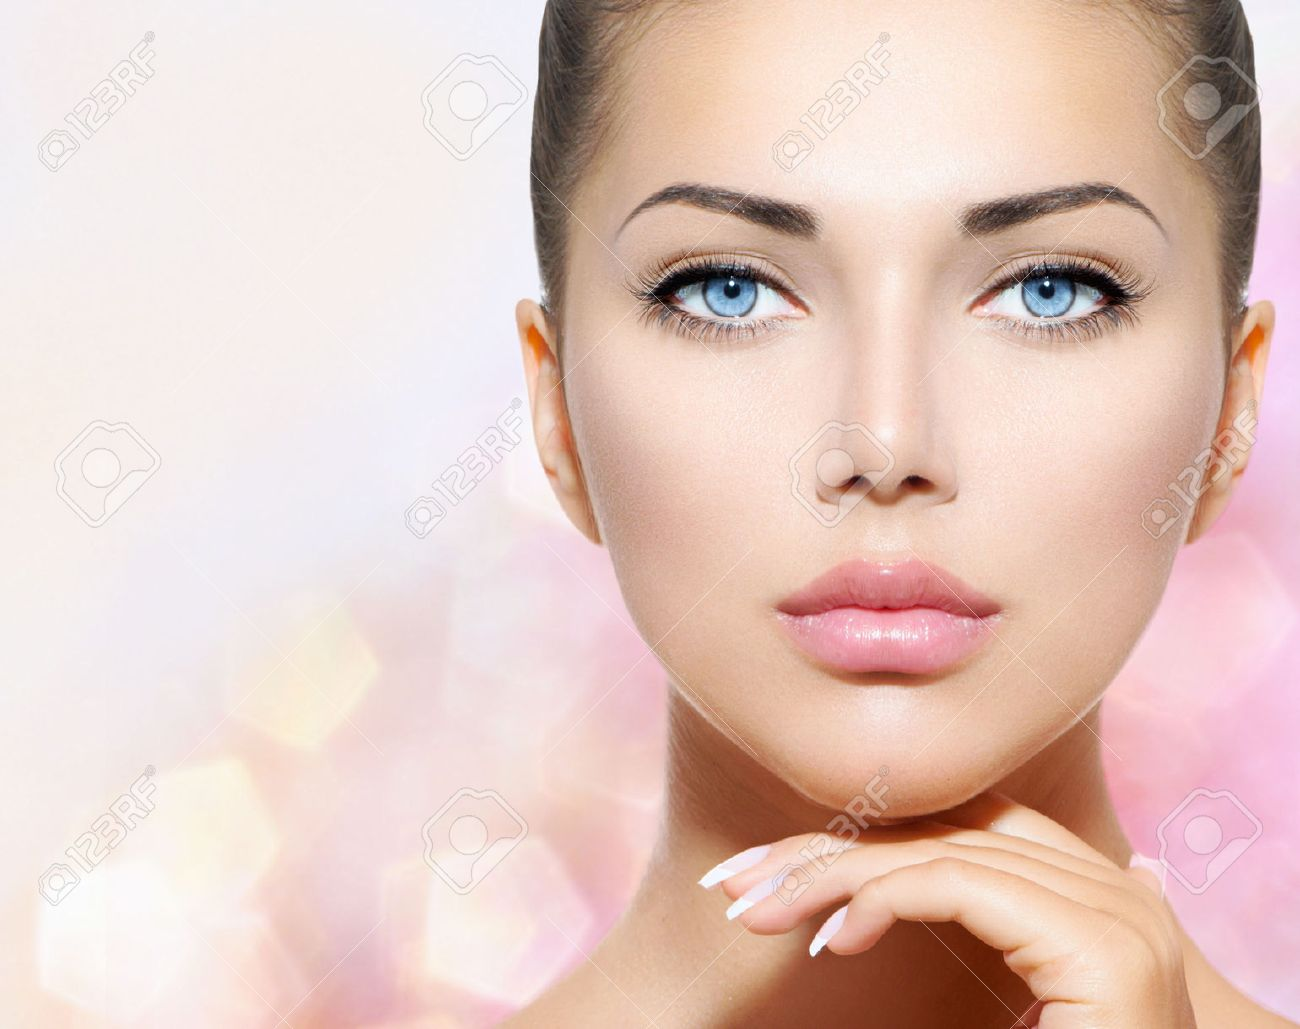 Beauty Portrait  Beautiful Spa Woman Touching her Face Stock Photo - 22997360